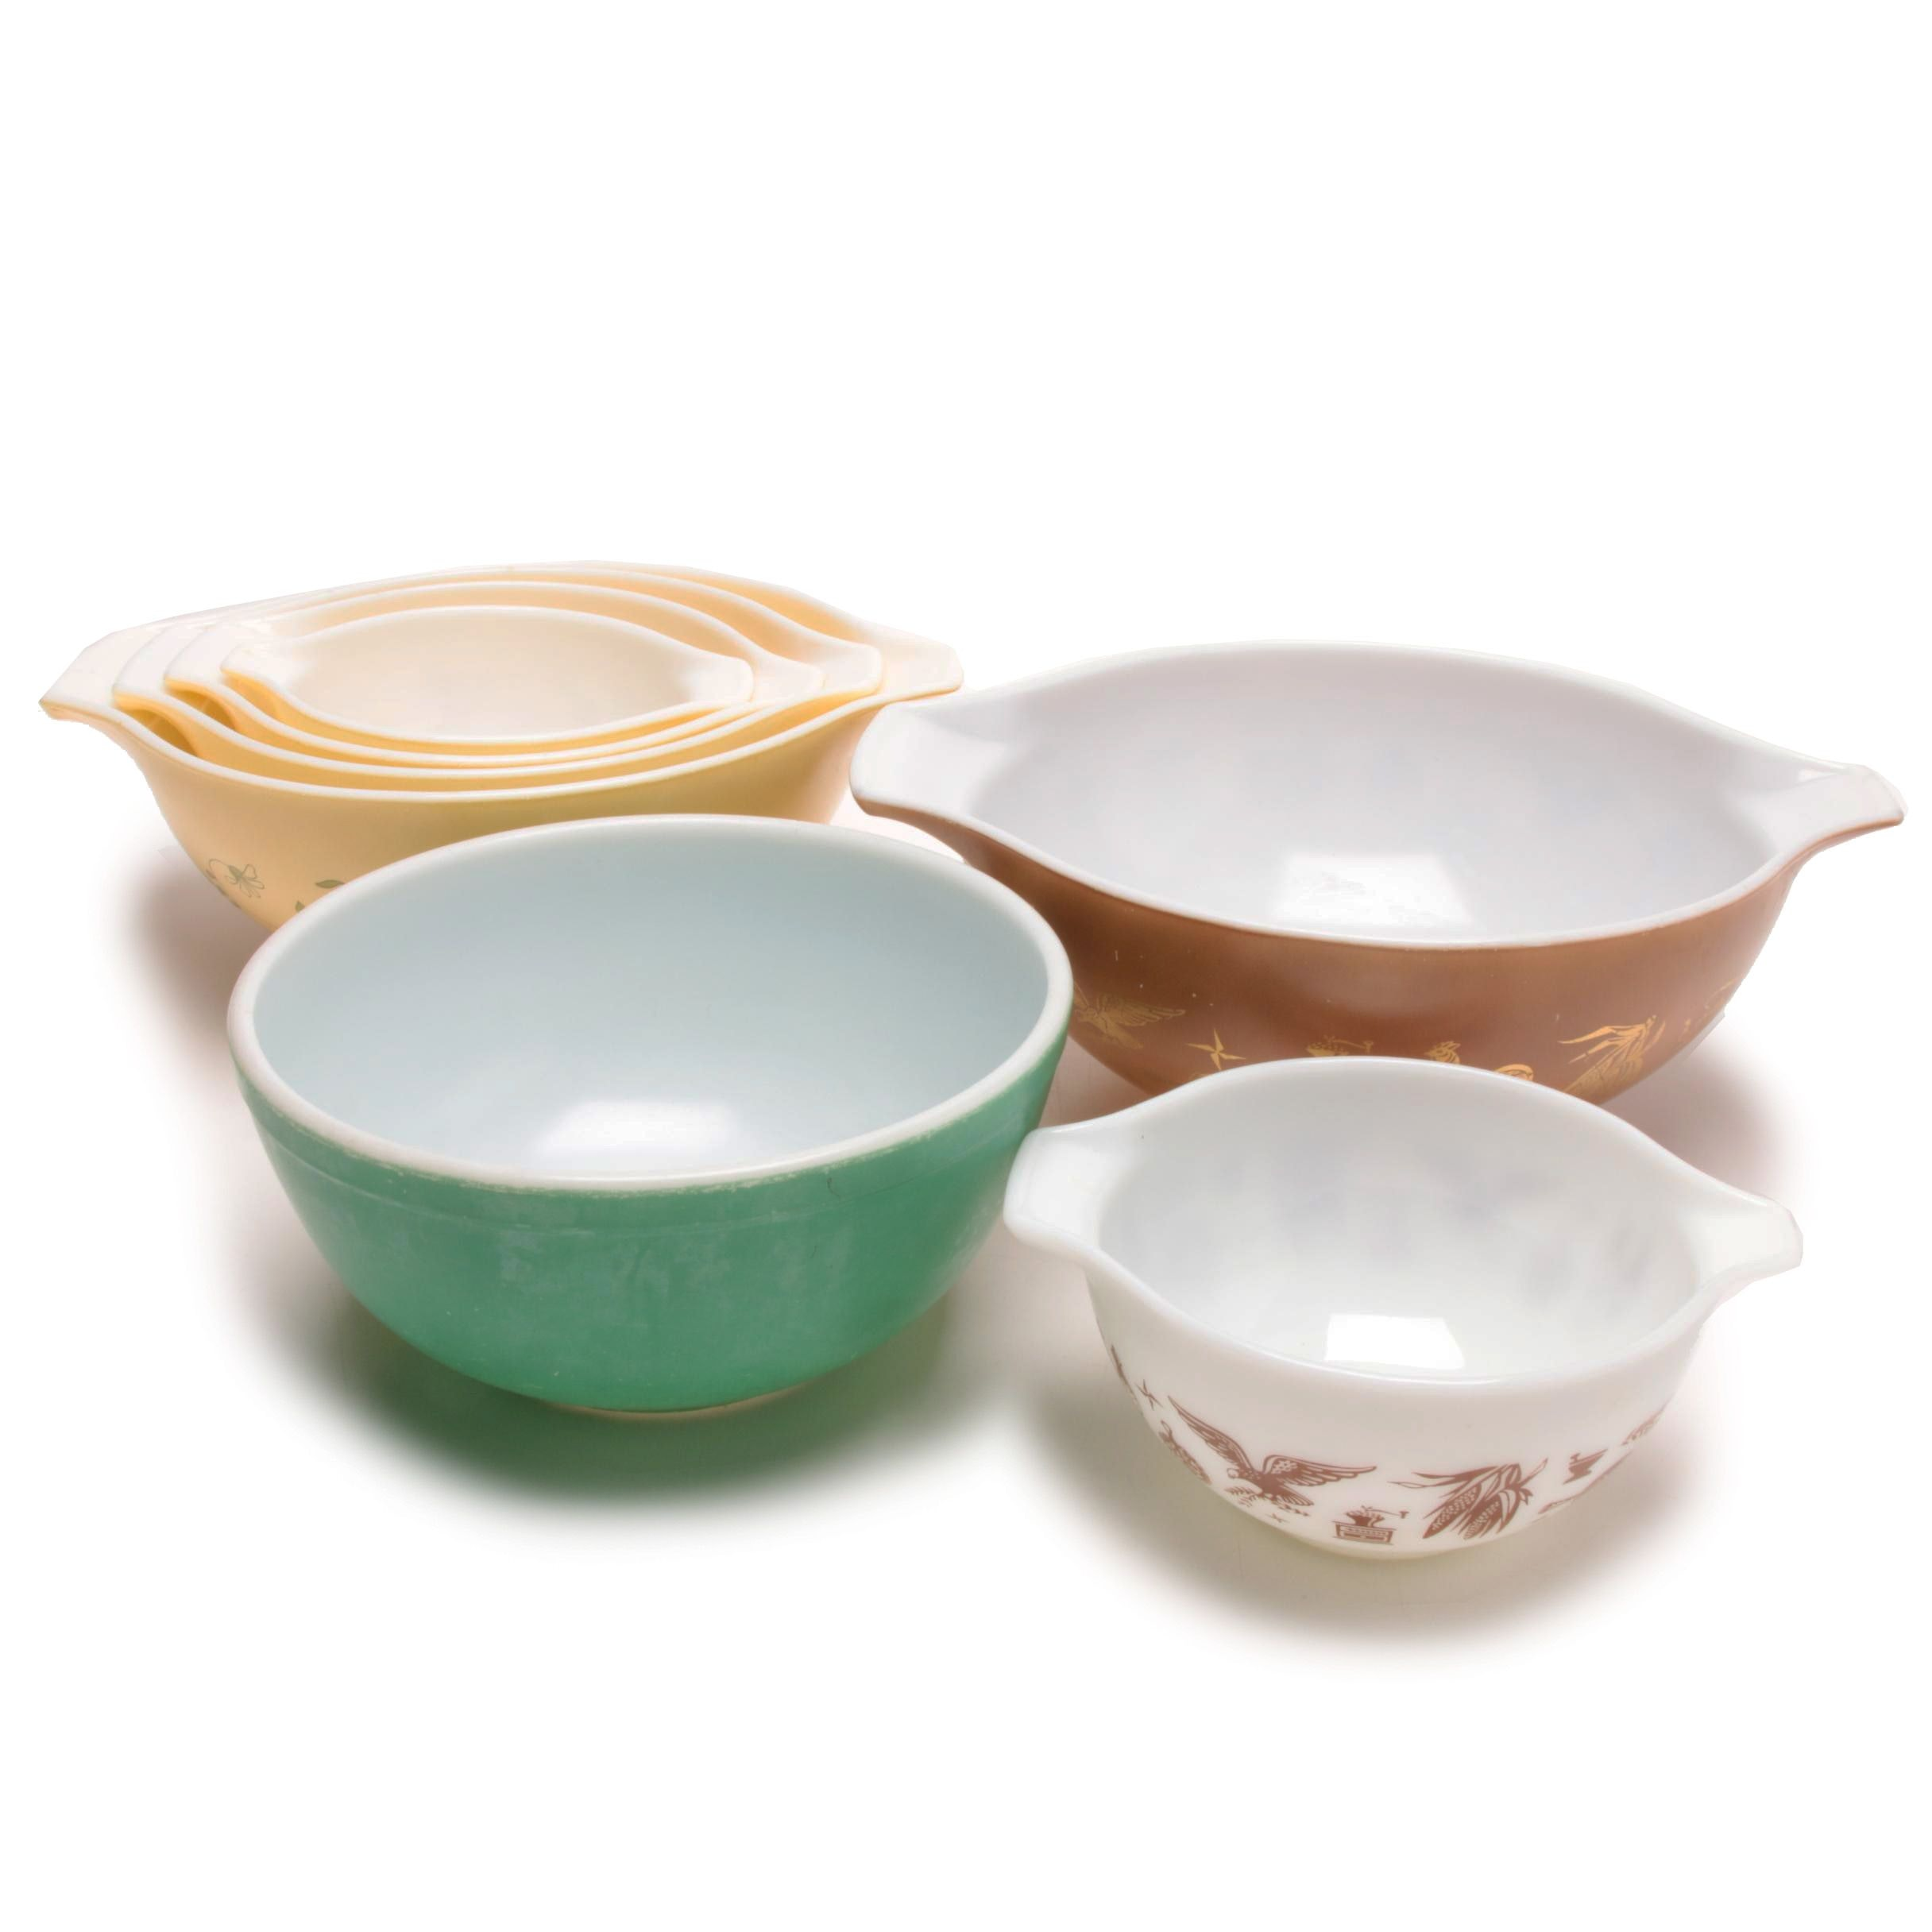 Pyrex Nesting and Mixing Bowls